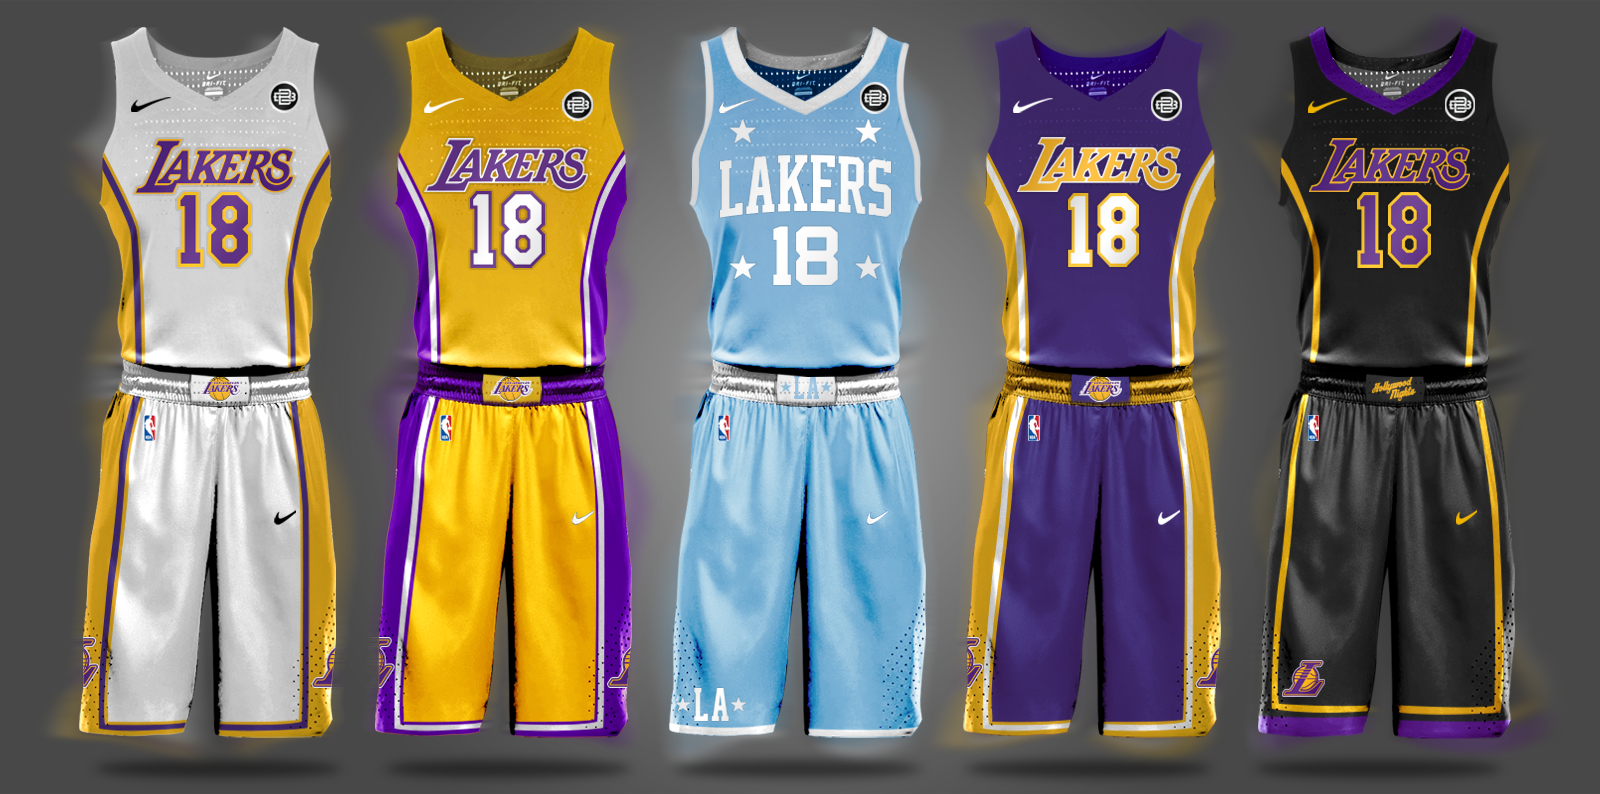 Los Angeles Lakers Kobe Bryant Lonzo Ball Big Baller Brand Lavar Ball Nike Nba Draft Sports Tshirt Designs Nba Uniforms Basketball Uniforms Design